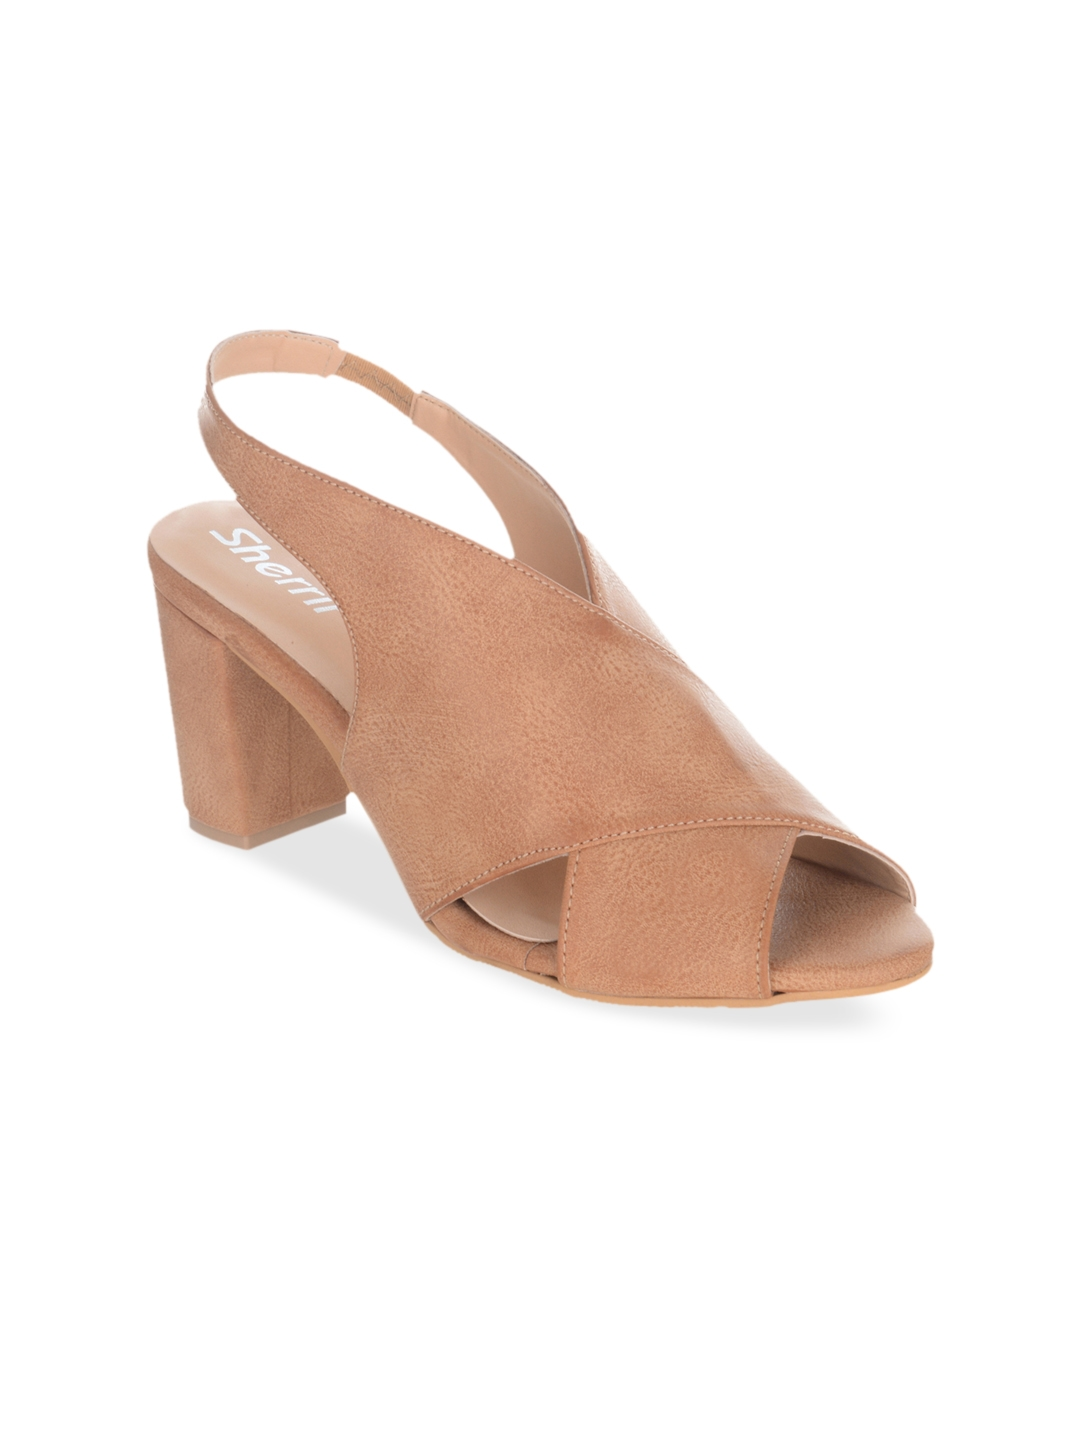 84304d078 Buy Sherrif Shoes Women Tan Solid Sandals - Heels for Women 2463812 ...